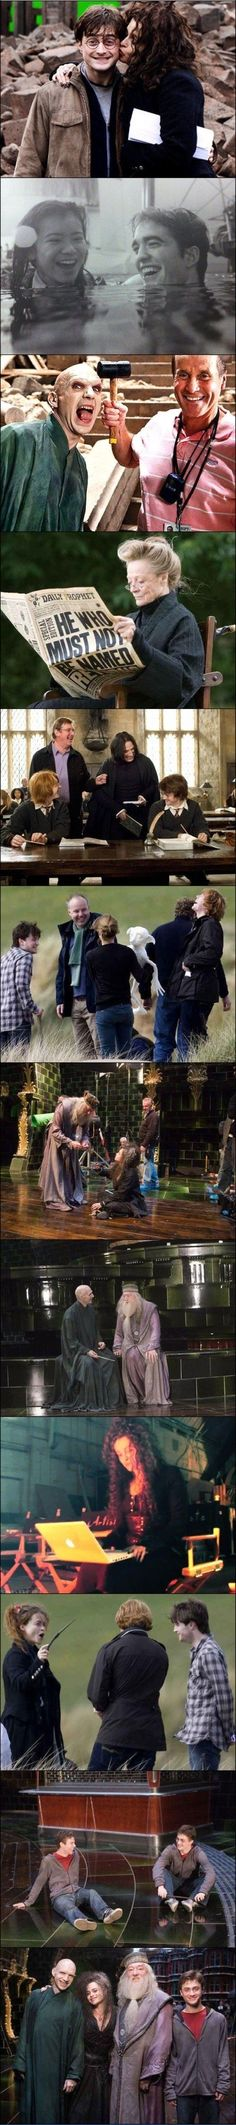 Harry Potter behind the scenes